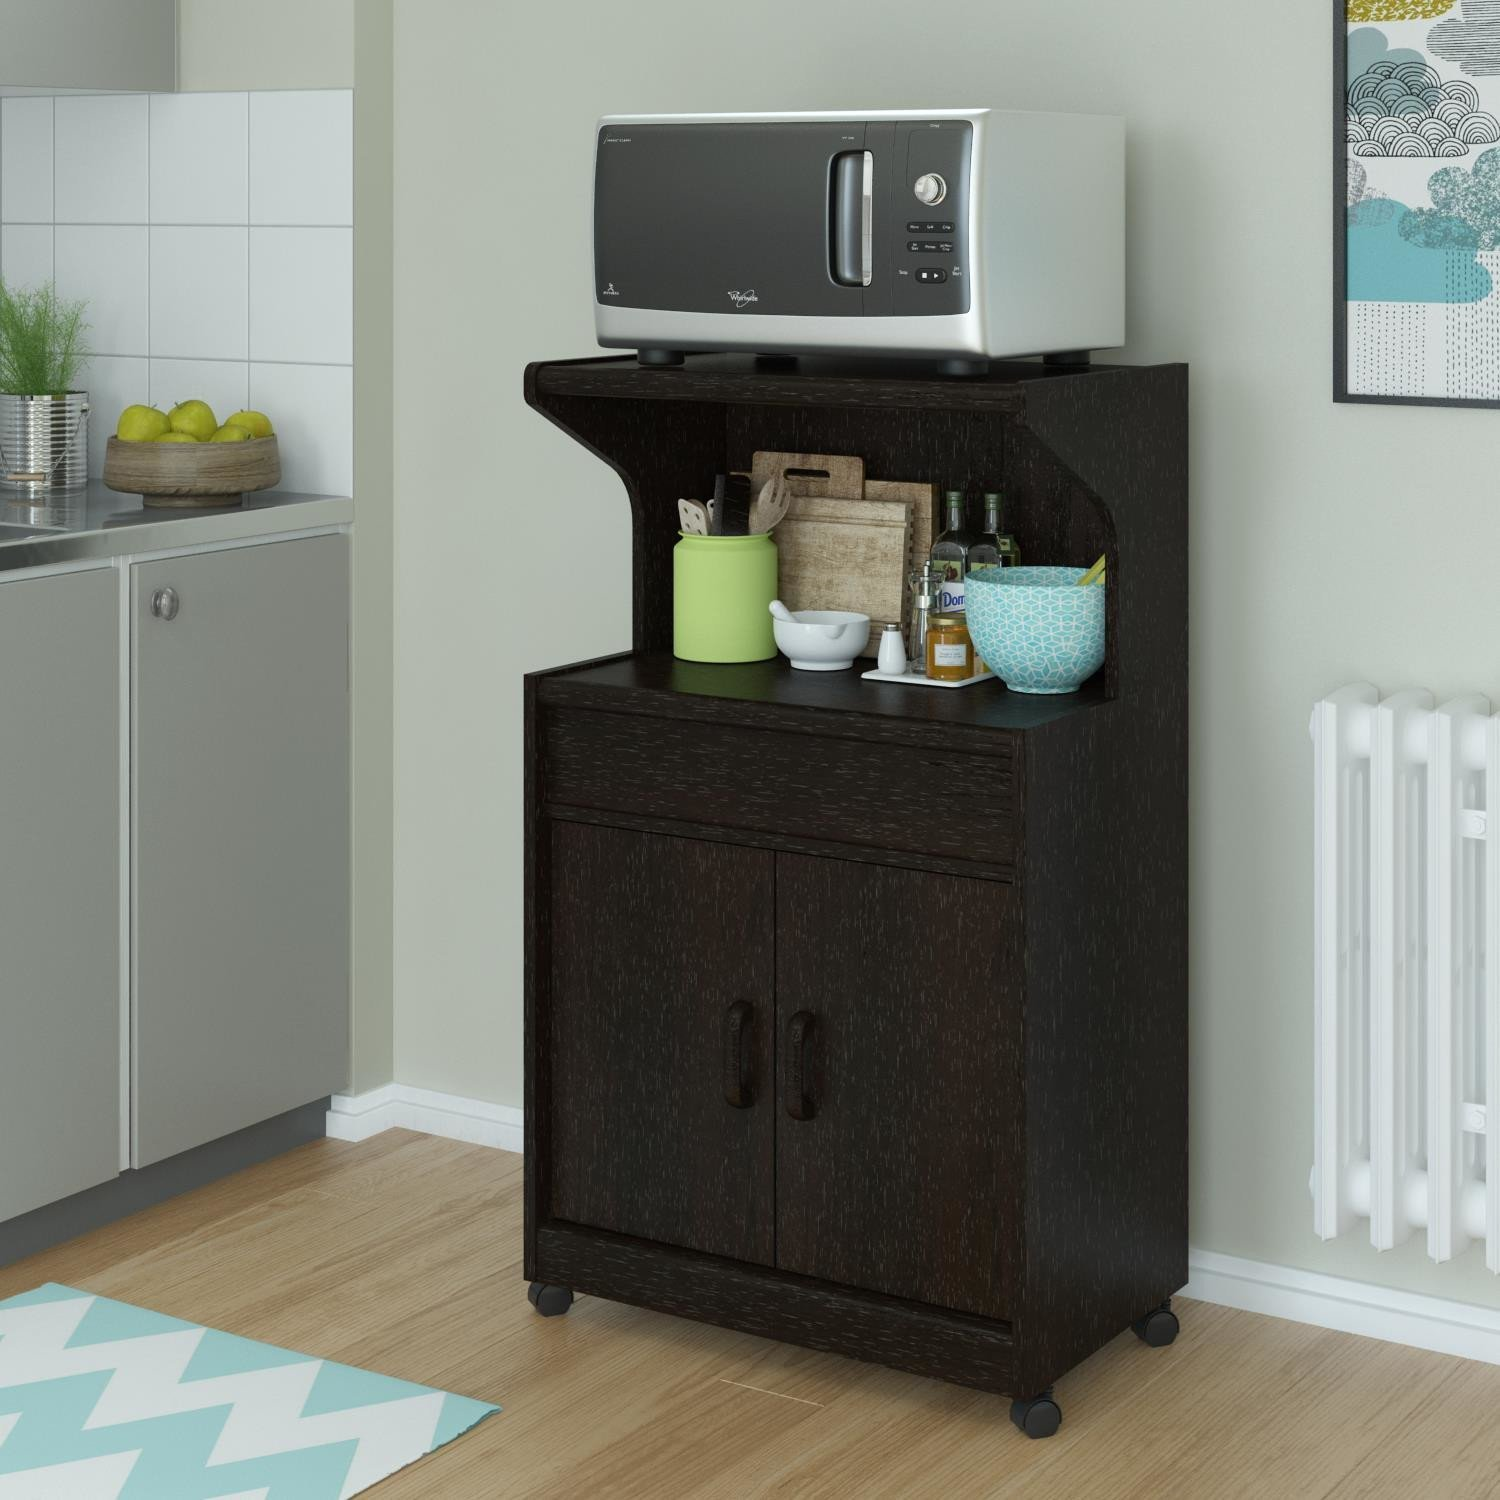 Image of: Microwave Stand with Drawer on Wheel